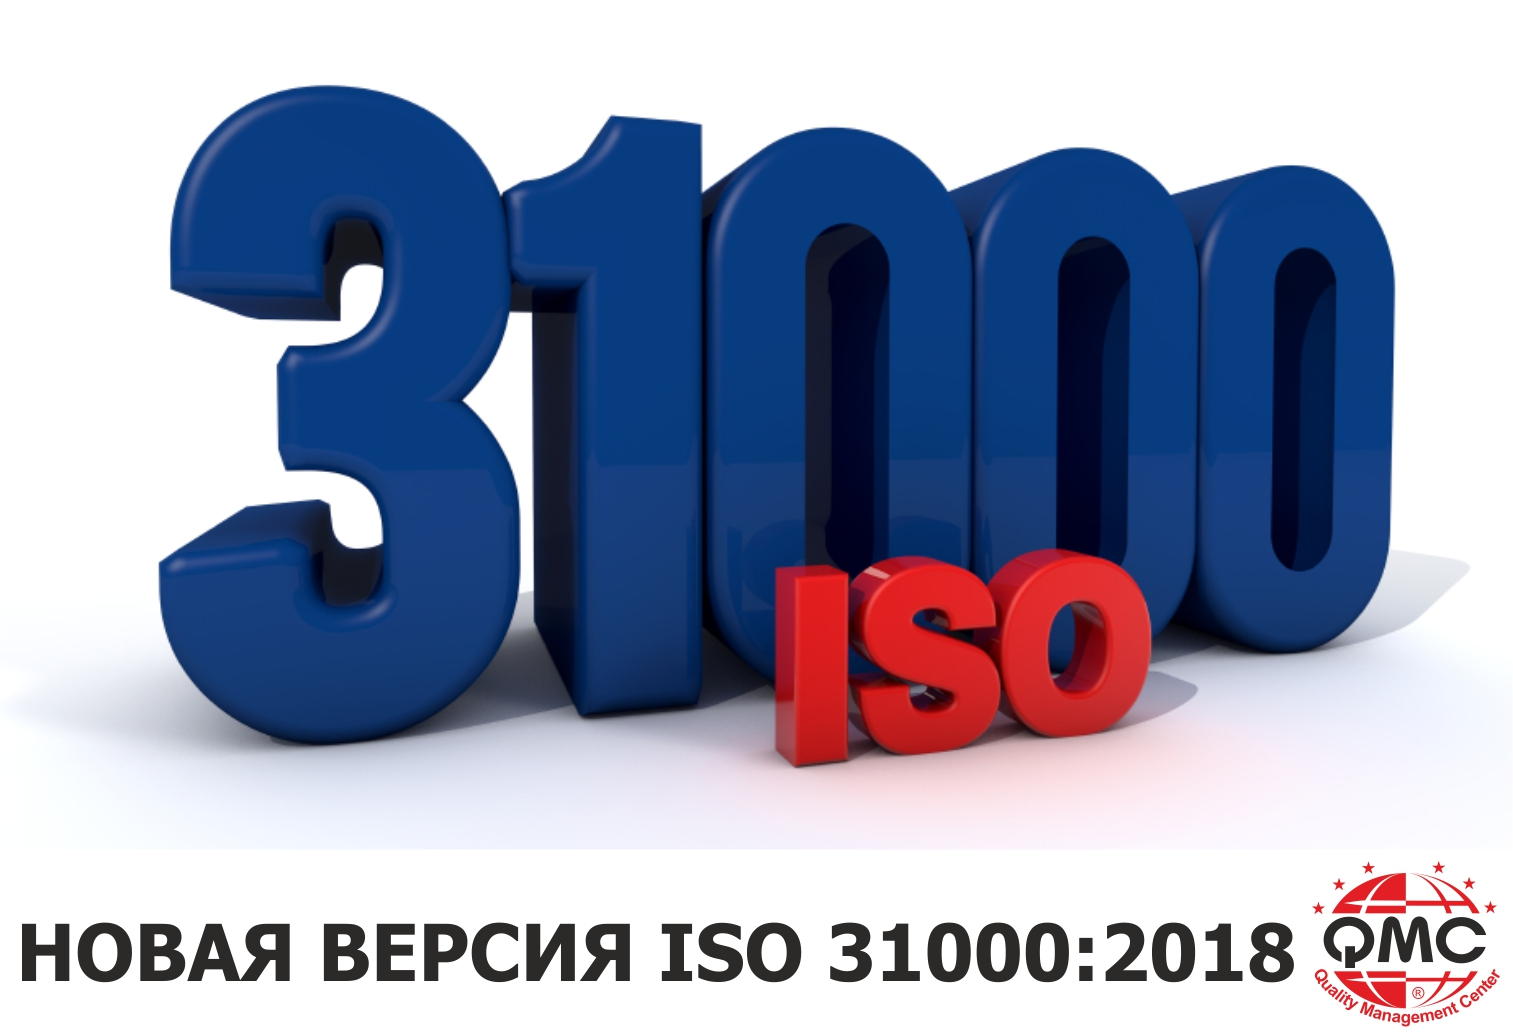 applying iso 31000 Iso 31000 is an international standard for risk management it offers standard risk concepts, terminology and processes for diverse organizations and their component departments iso 31000 defines risk as the effect of uncertainty on (organizational) objectives.